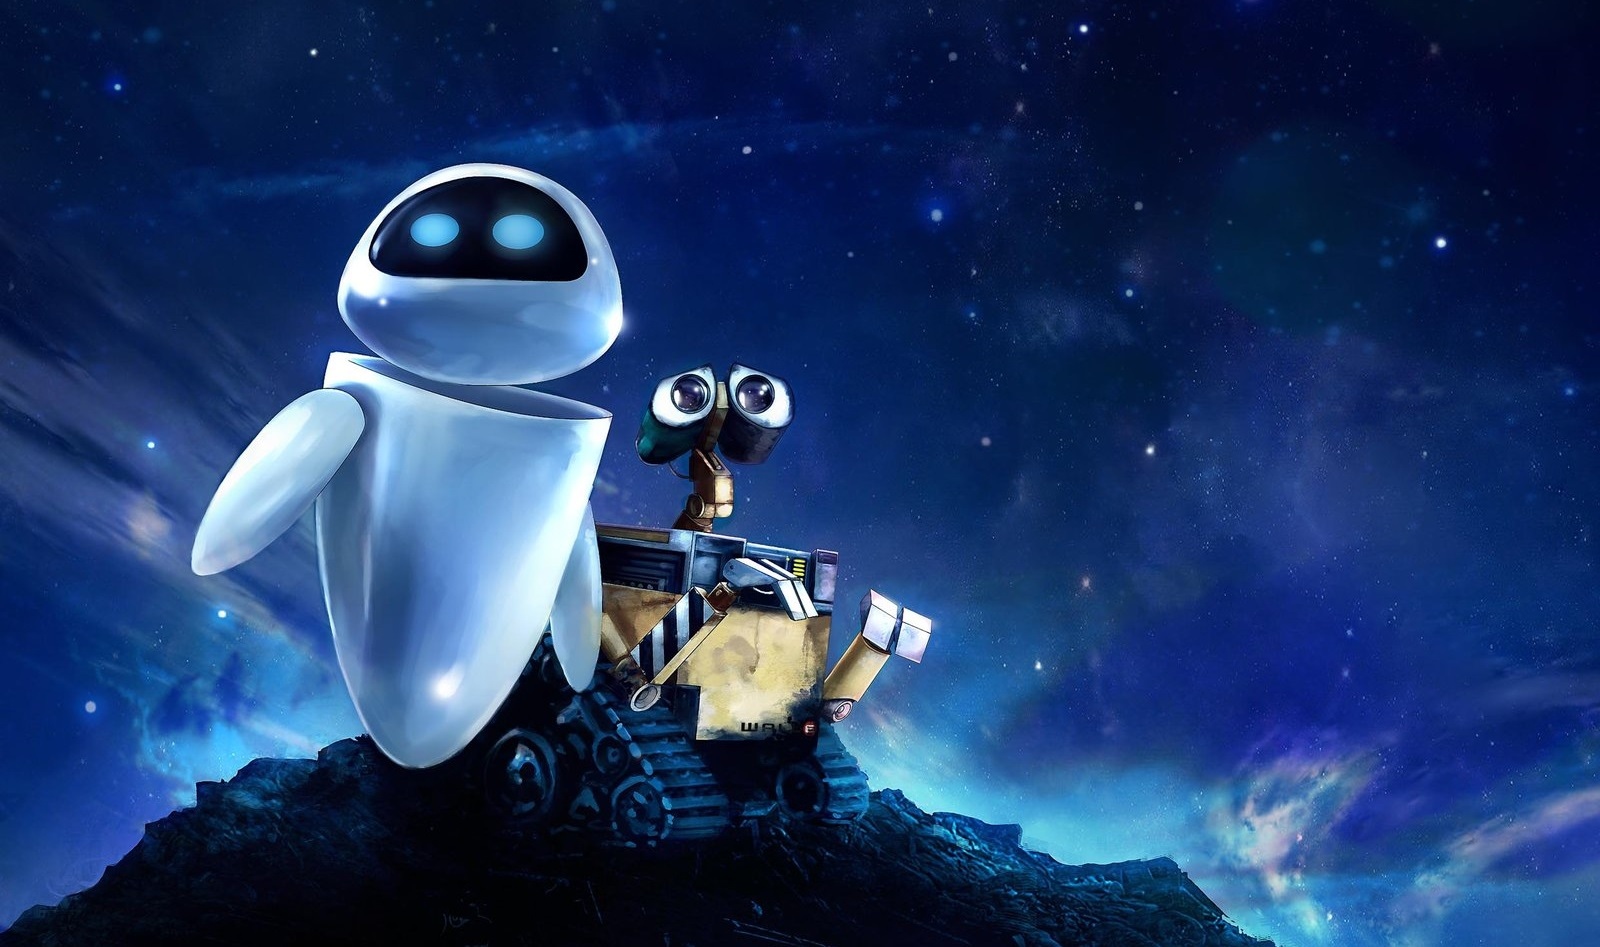 wallpaper wall-e